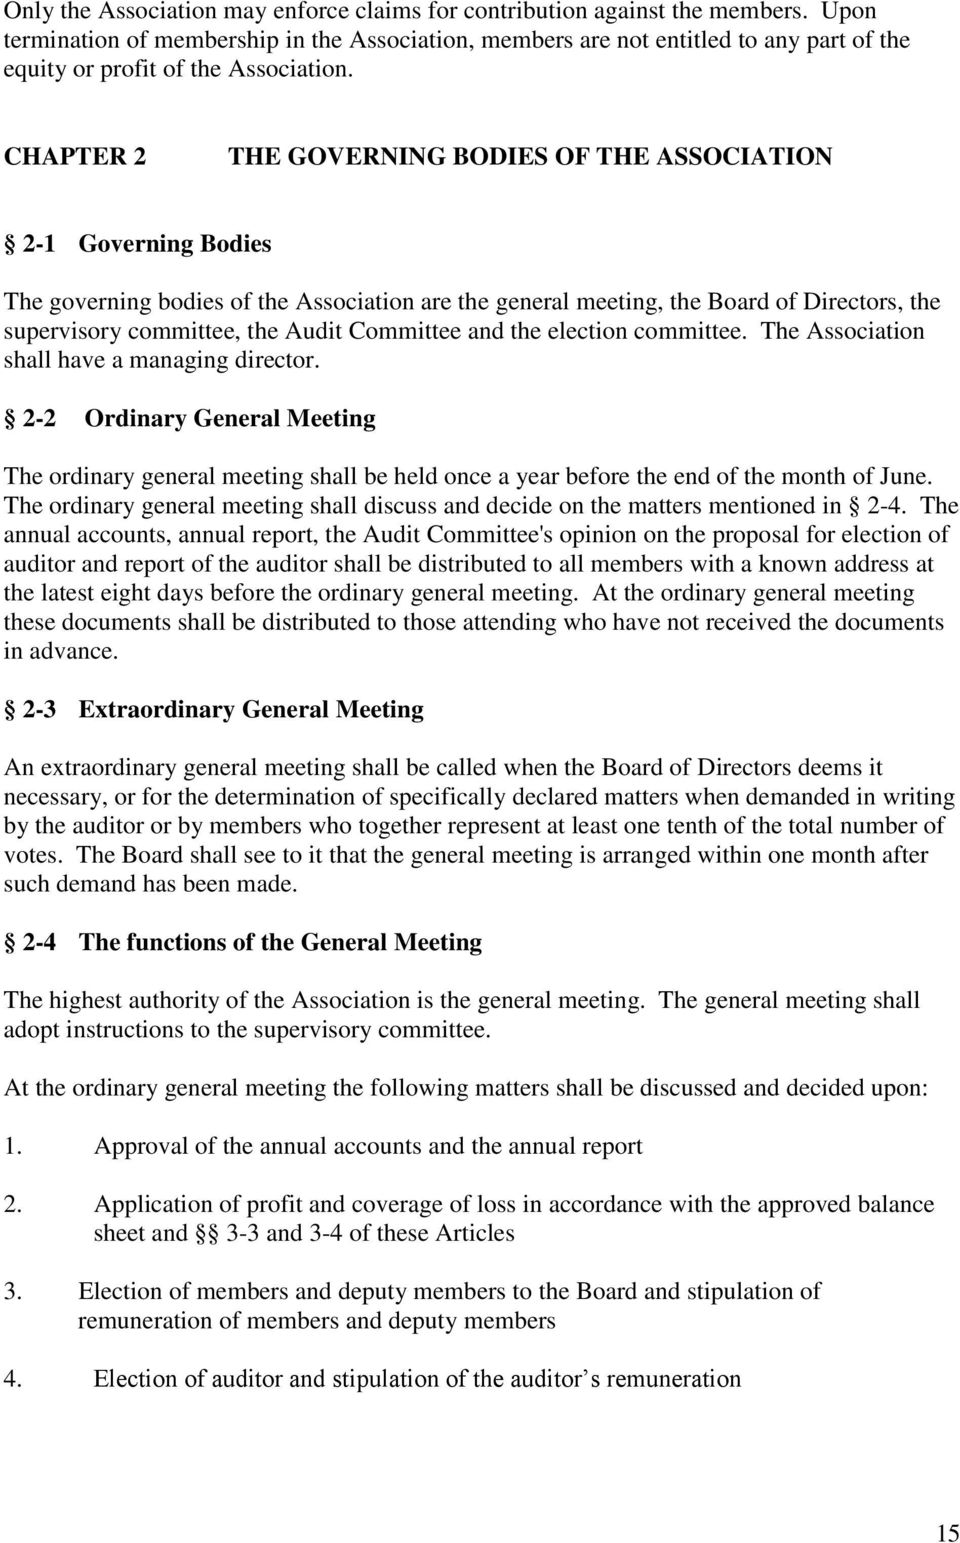 CHAPTER 2 THE GOVERNING BODIES OF THE ASSOCIATION 2-1 Governing Bodies The governing bodies of the Association are the general meeting, the Board of Directors, the supervisory committee, the Audit